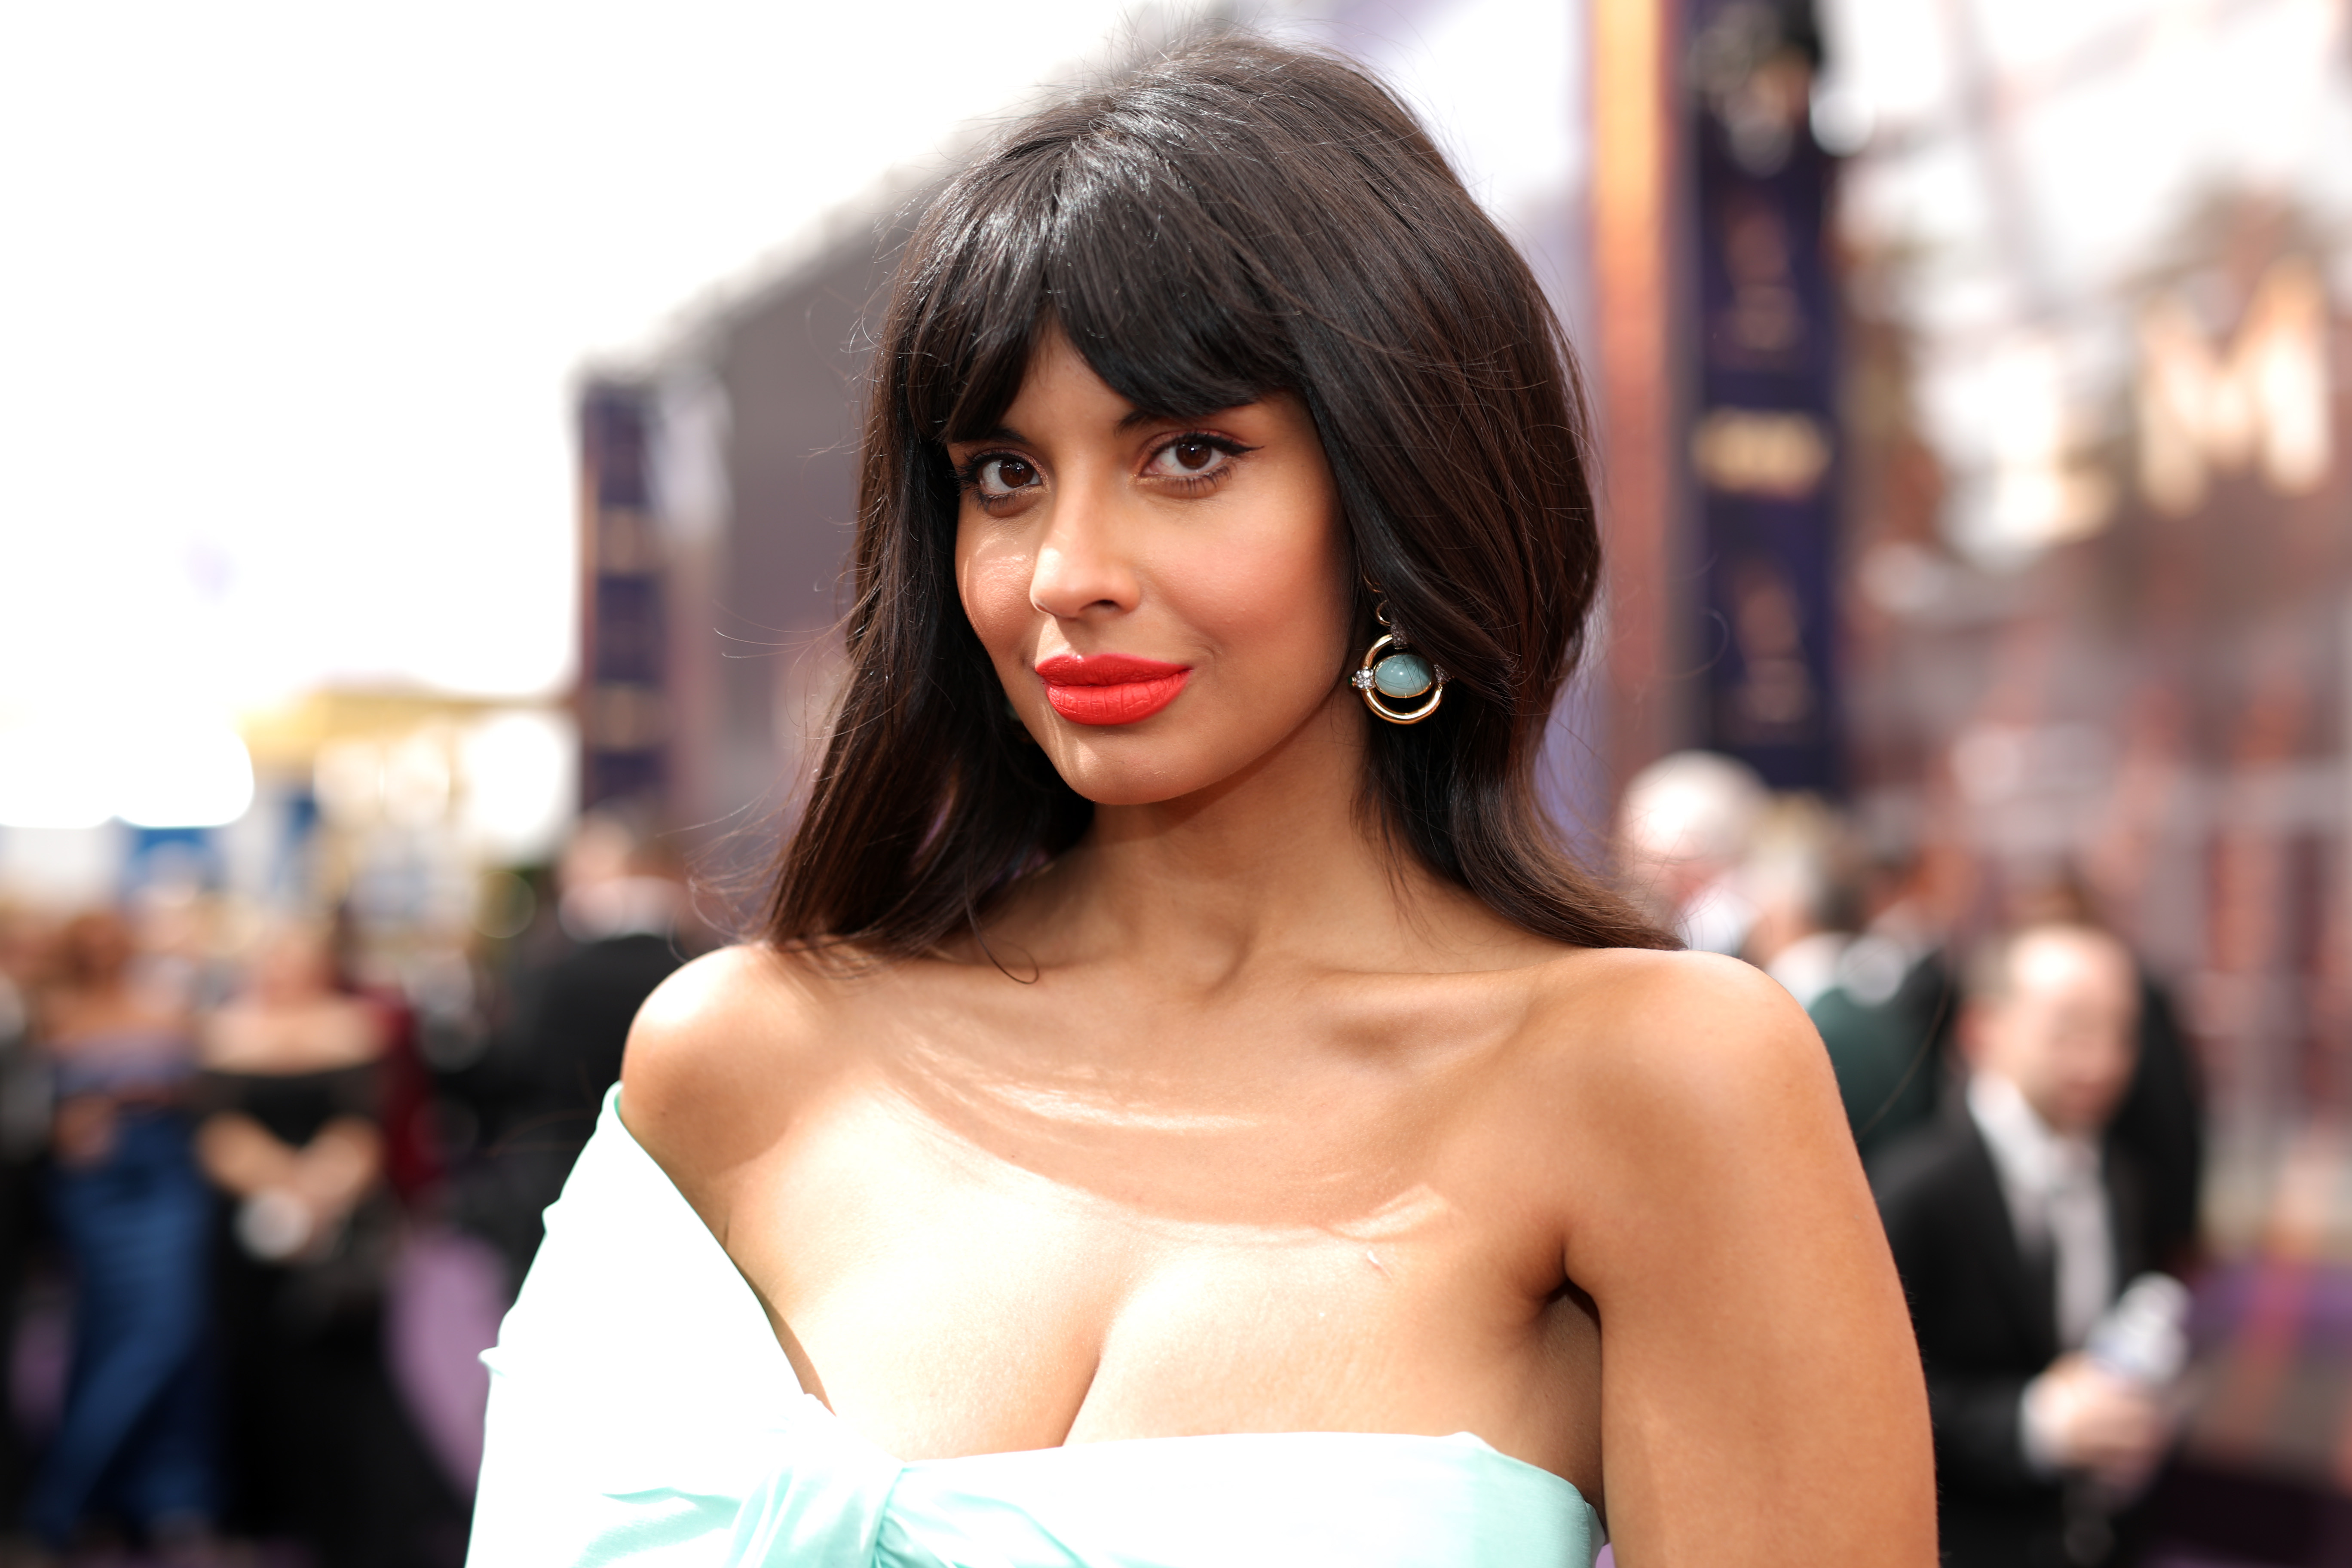 Jameela Jamil (Photo by Rich Polk/Getty Images for IMDb)